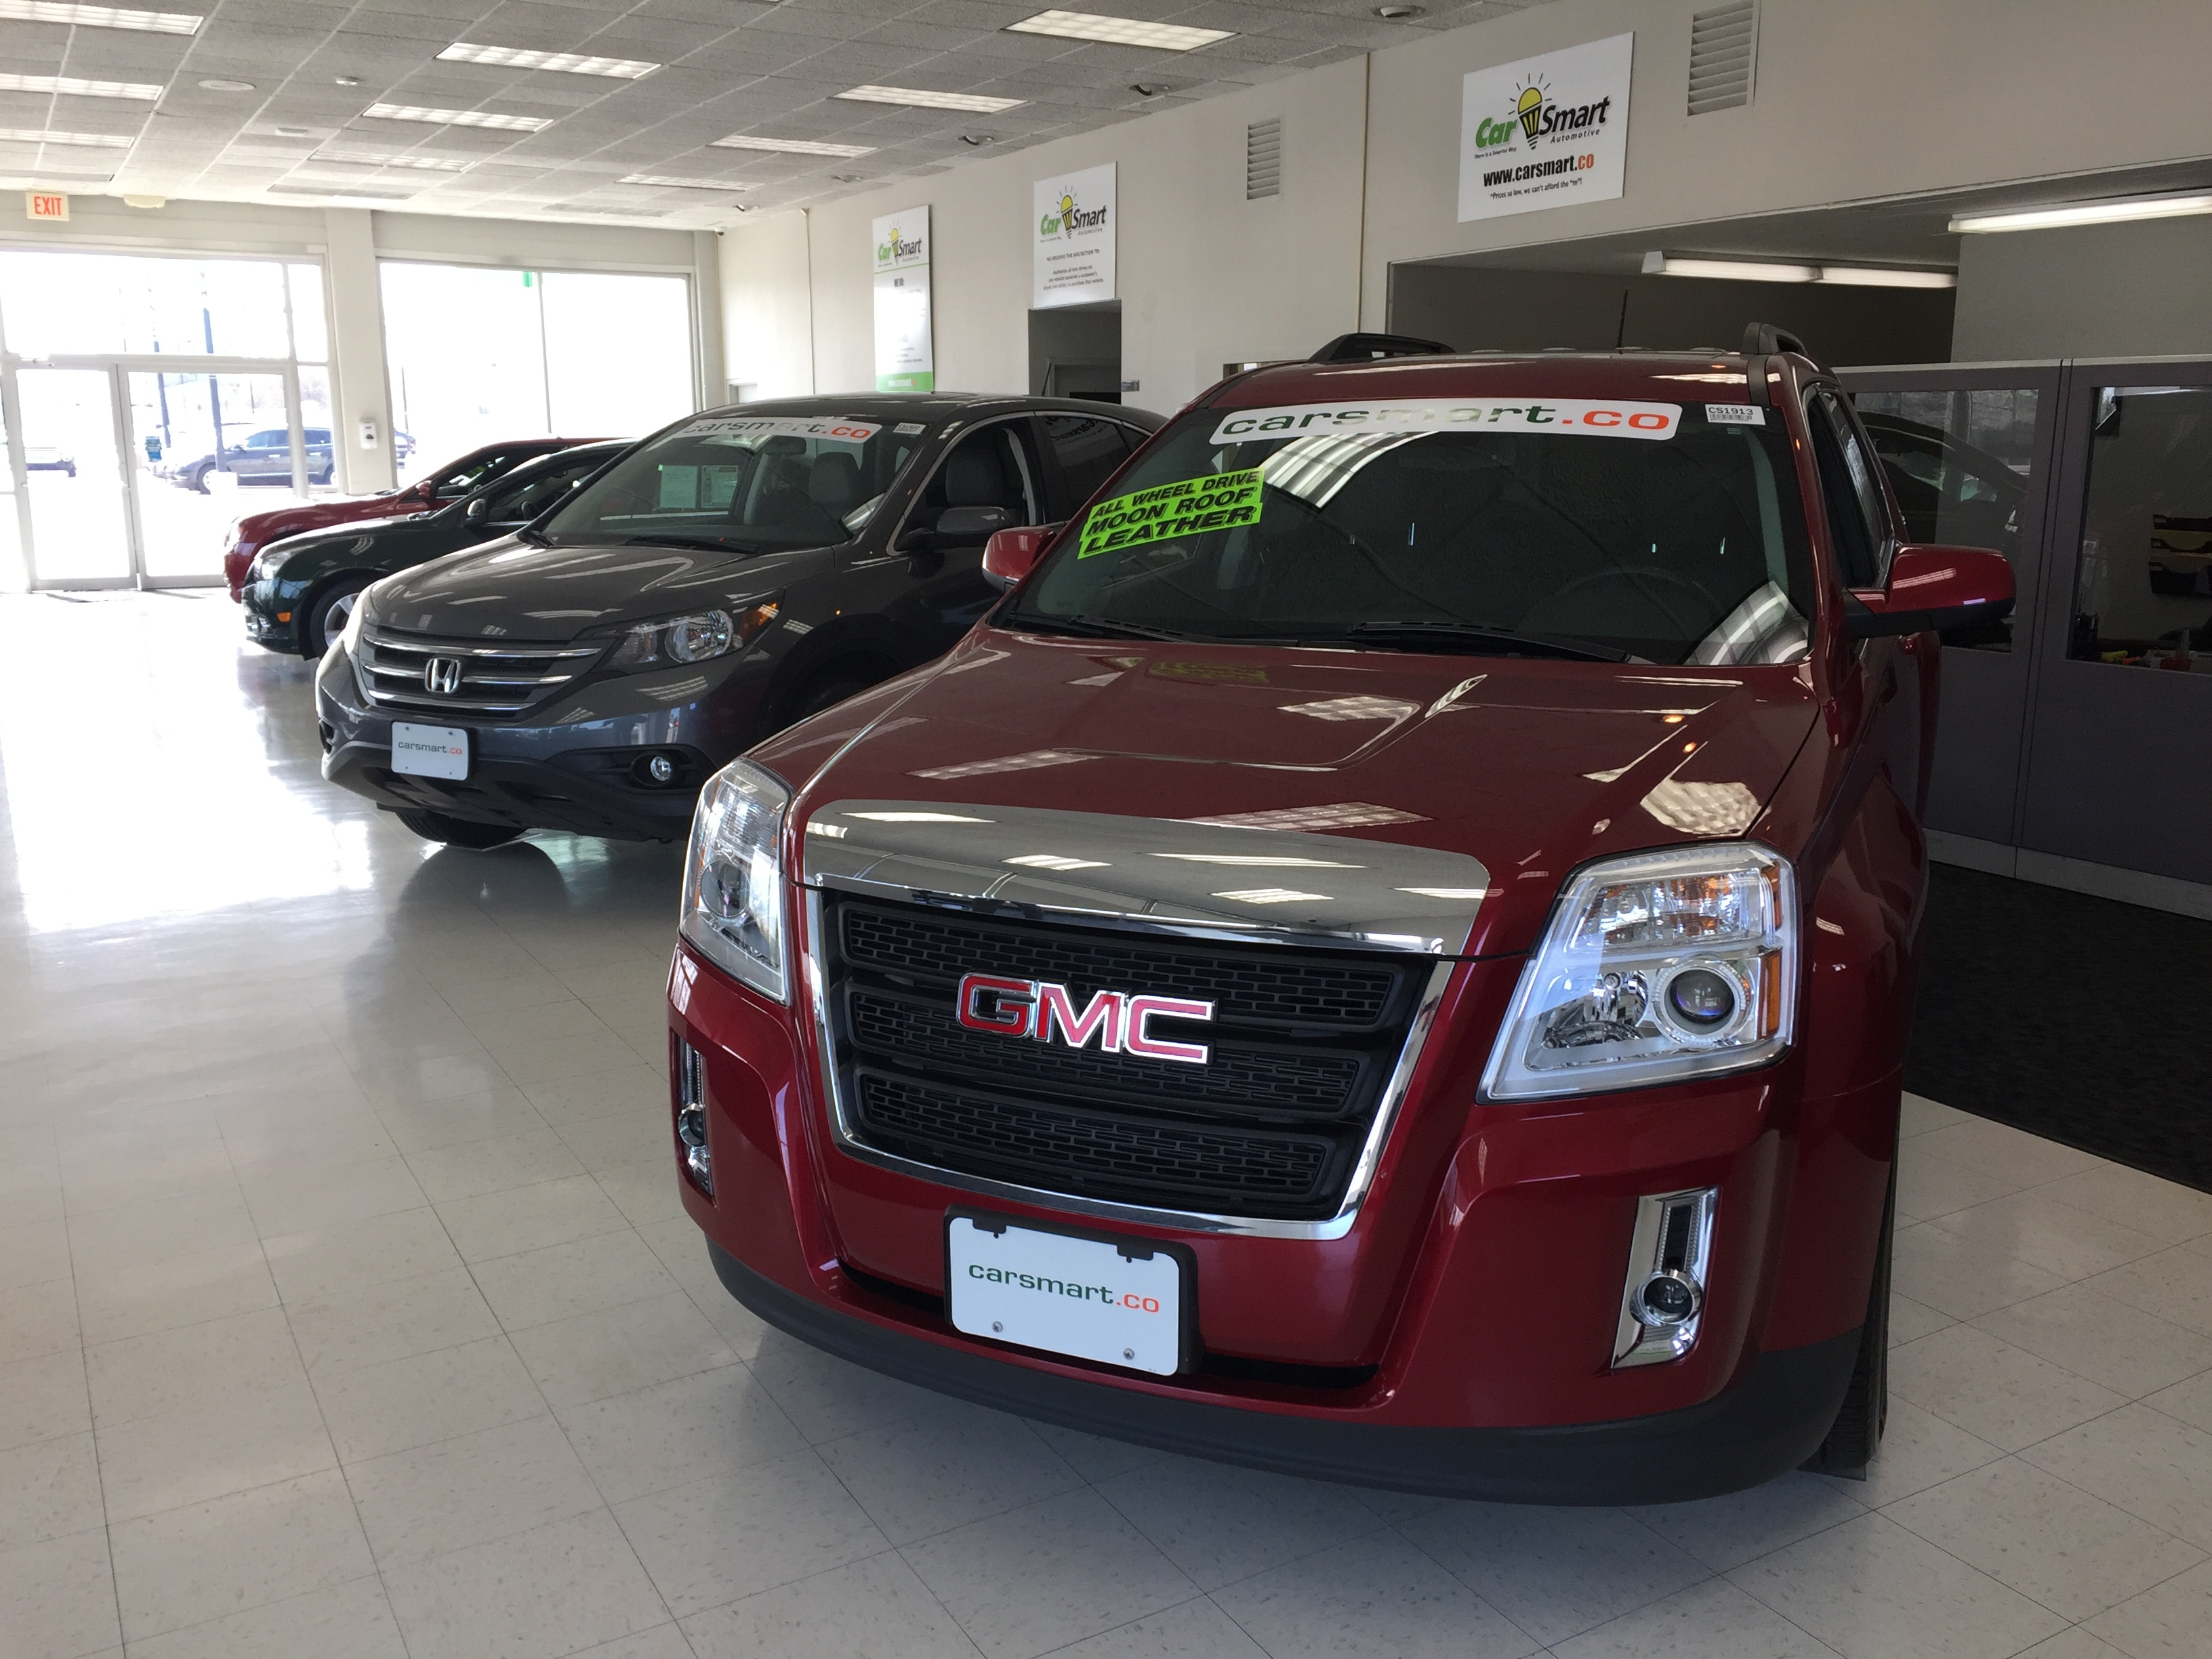 the most prehensive selection of pre owned vehicles in the metro toledo ohio area is at car smart automotive in maumee a contemporary pre owned